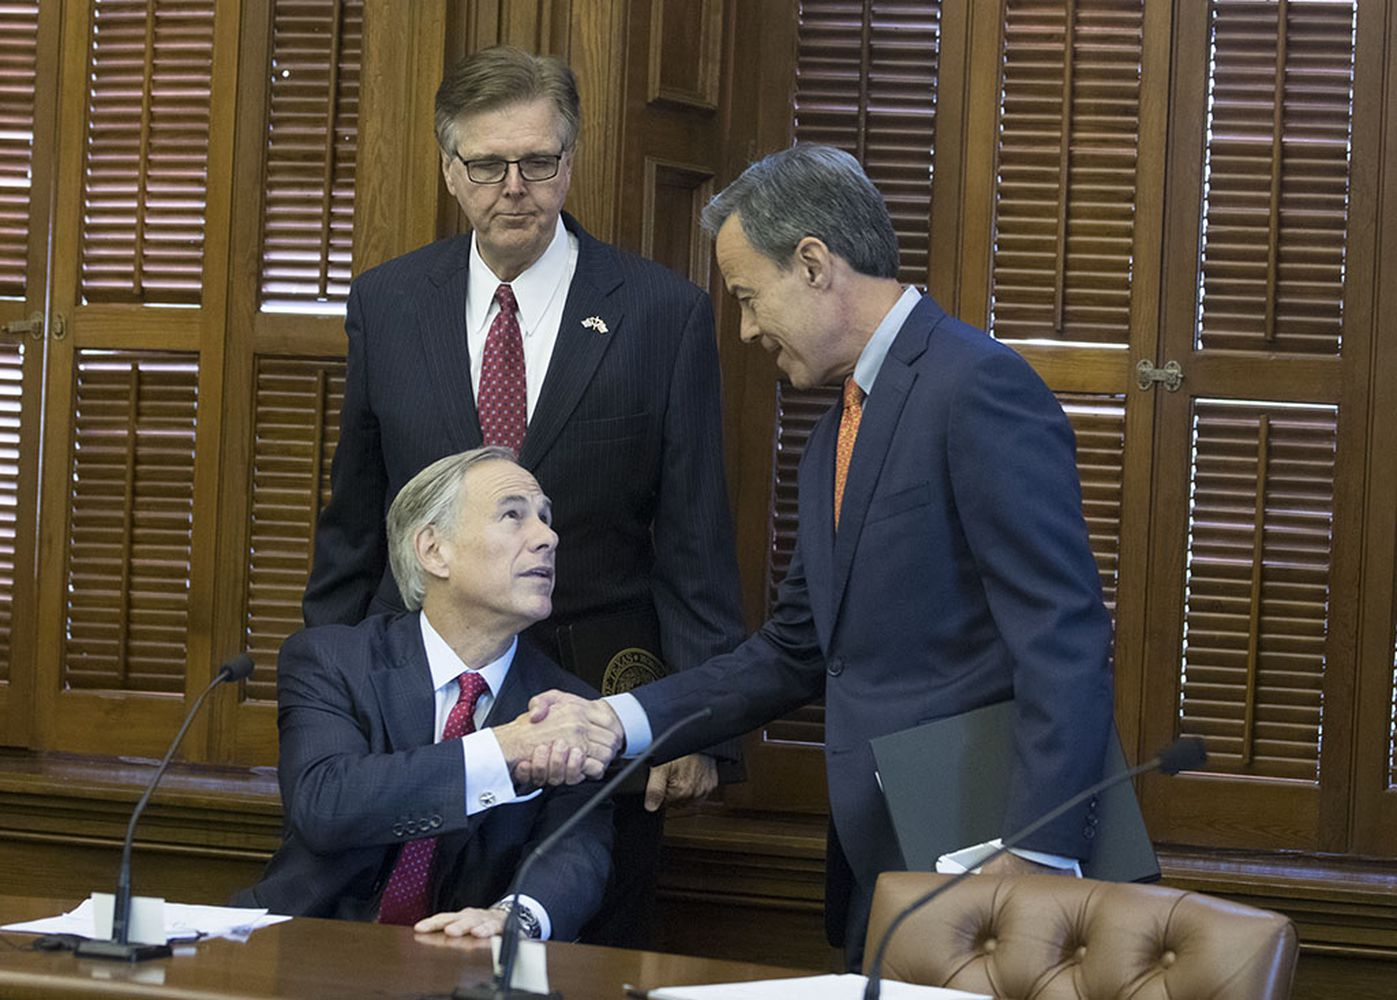 The three leaders of Texas make nice at a short Cash Management Committee meeting in the Betty King Room of the Texas Capitol on July 18, 2017, the first day of the special session.